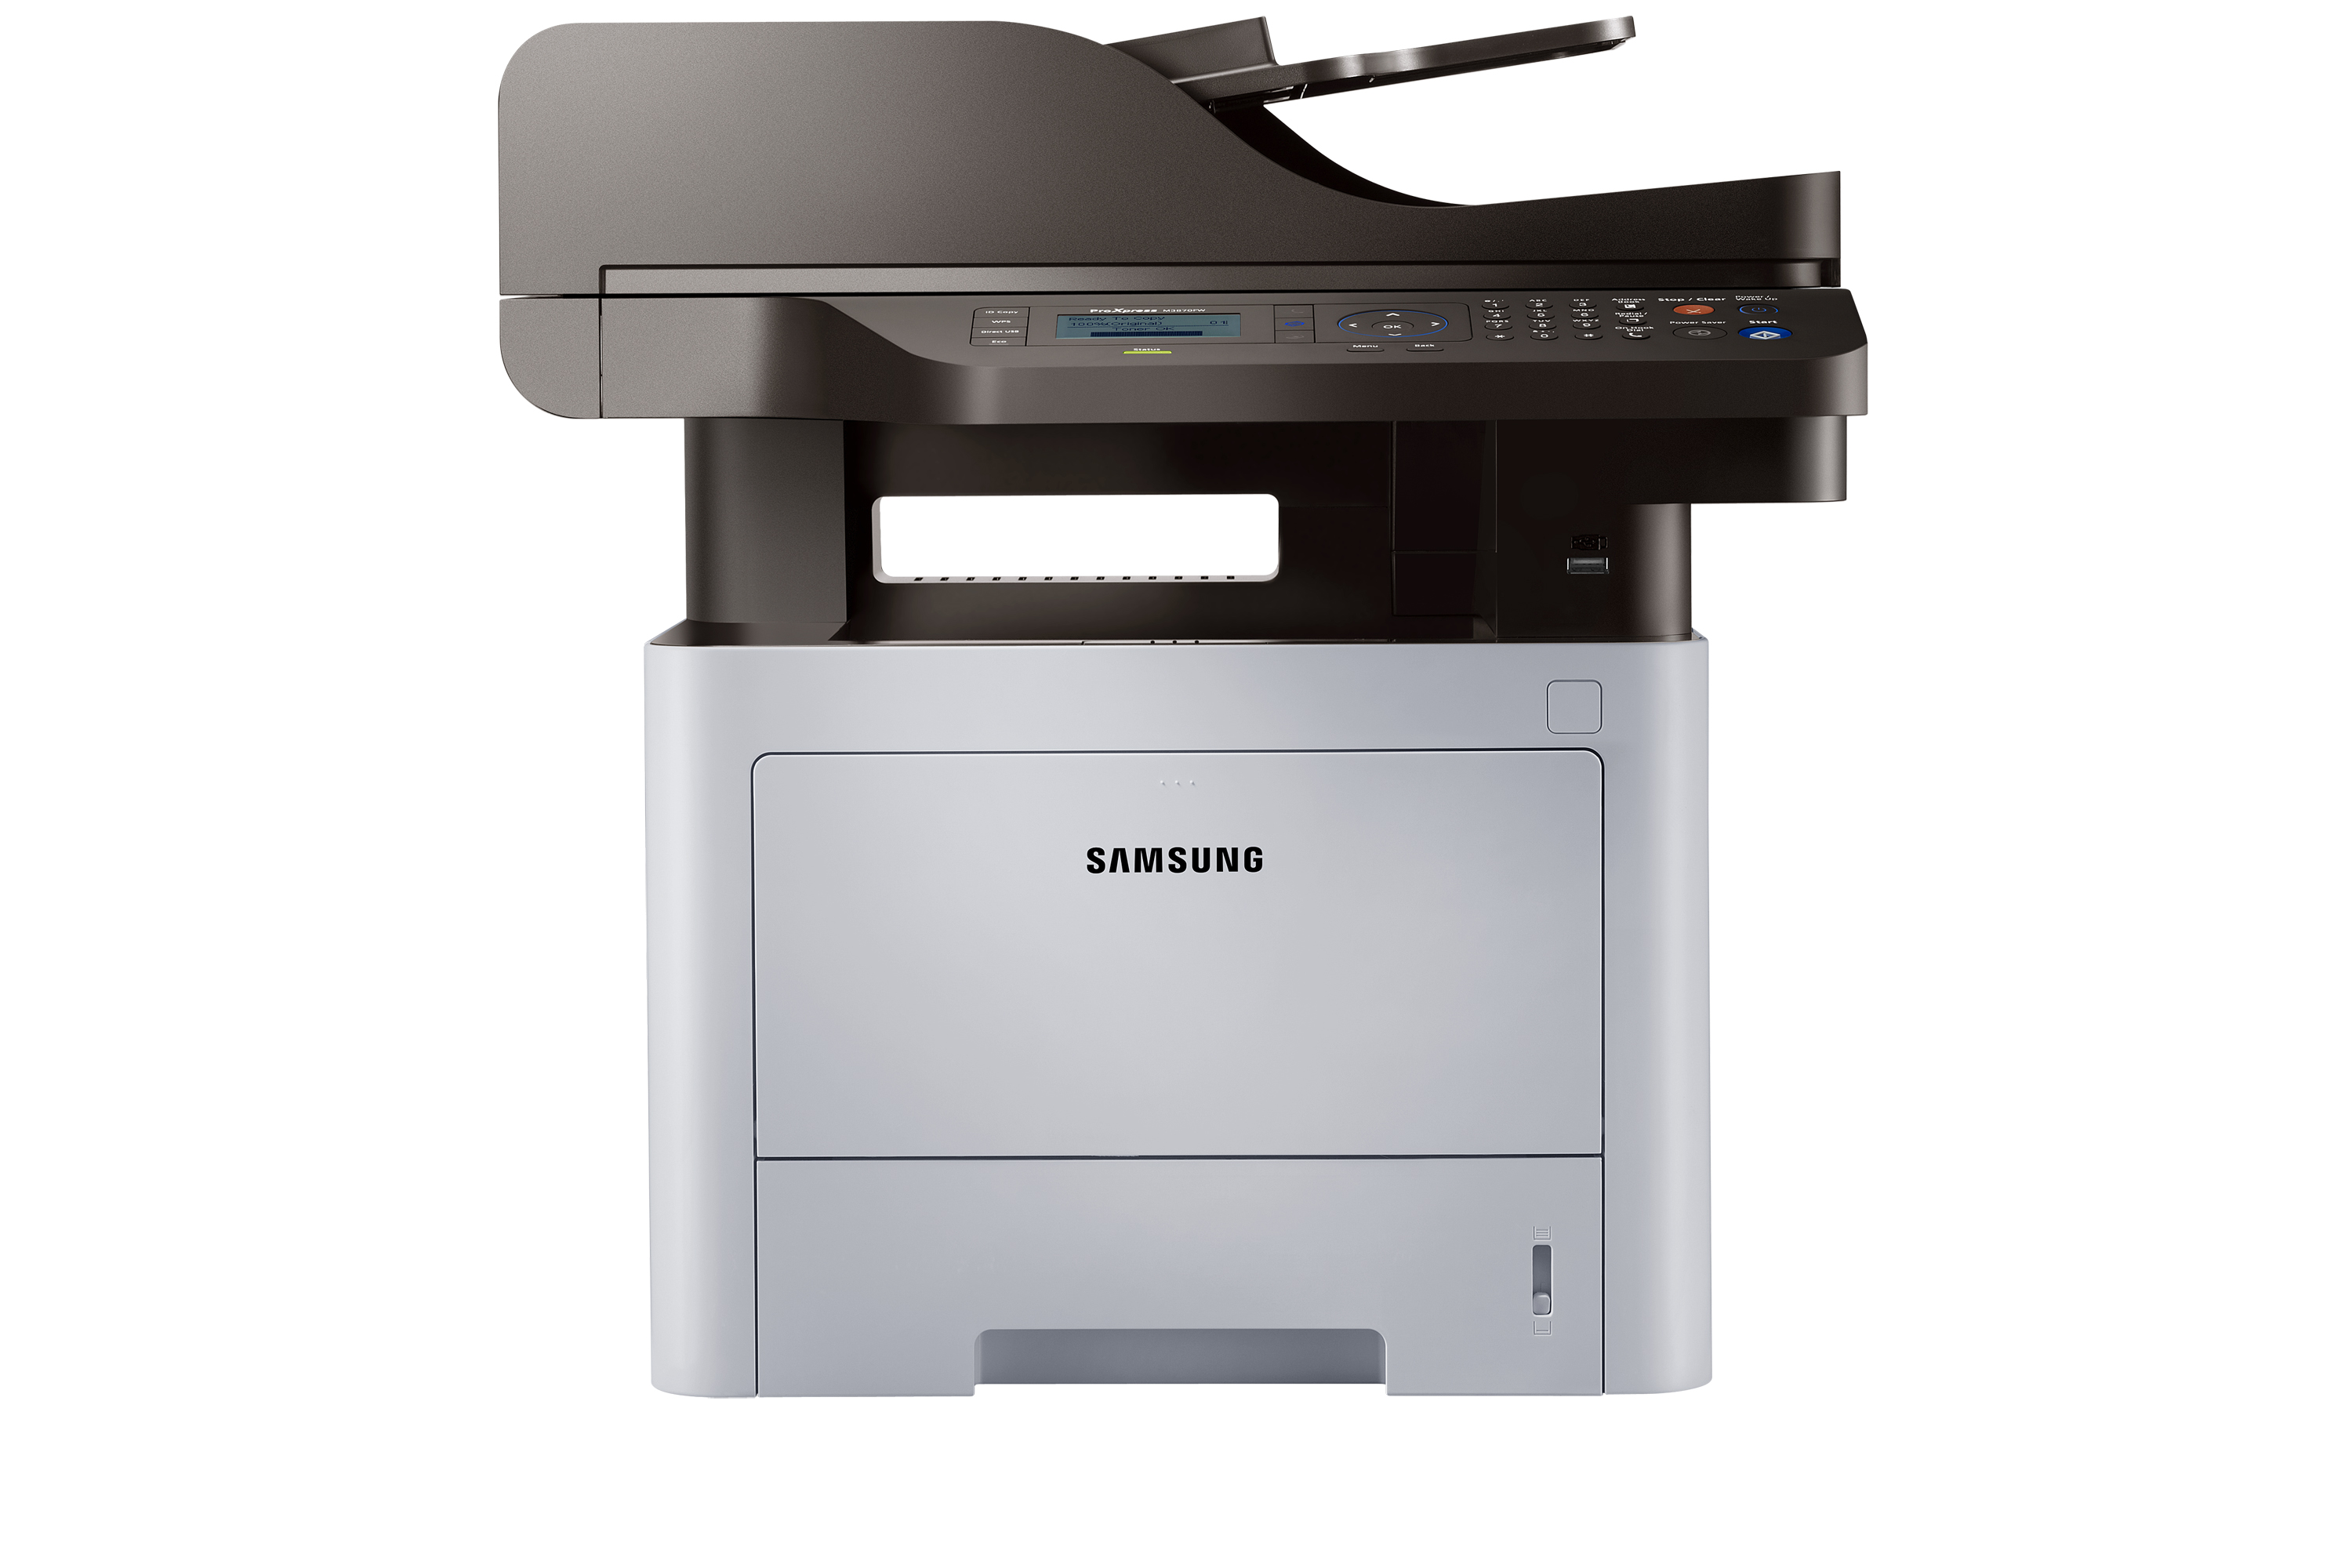 Samsung Mono Multifunction Printer SL-M3870FW with £65 cashback